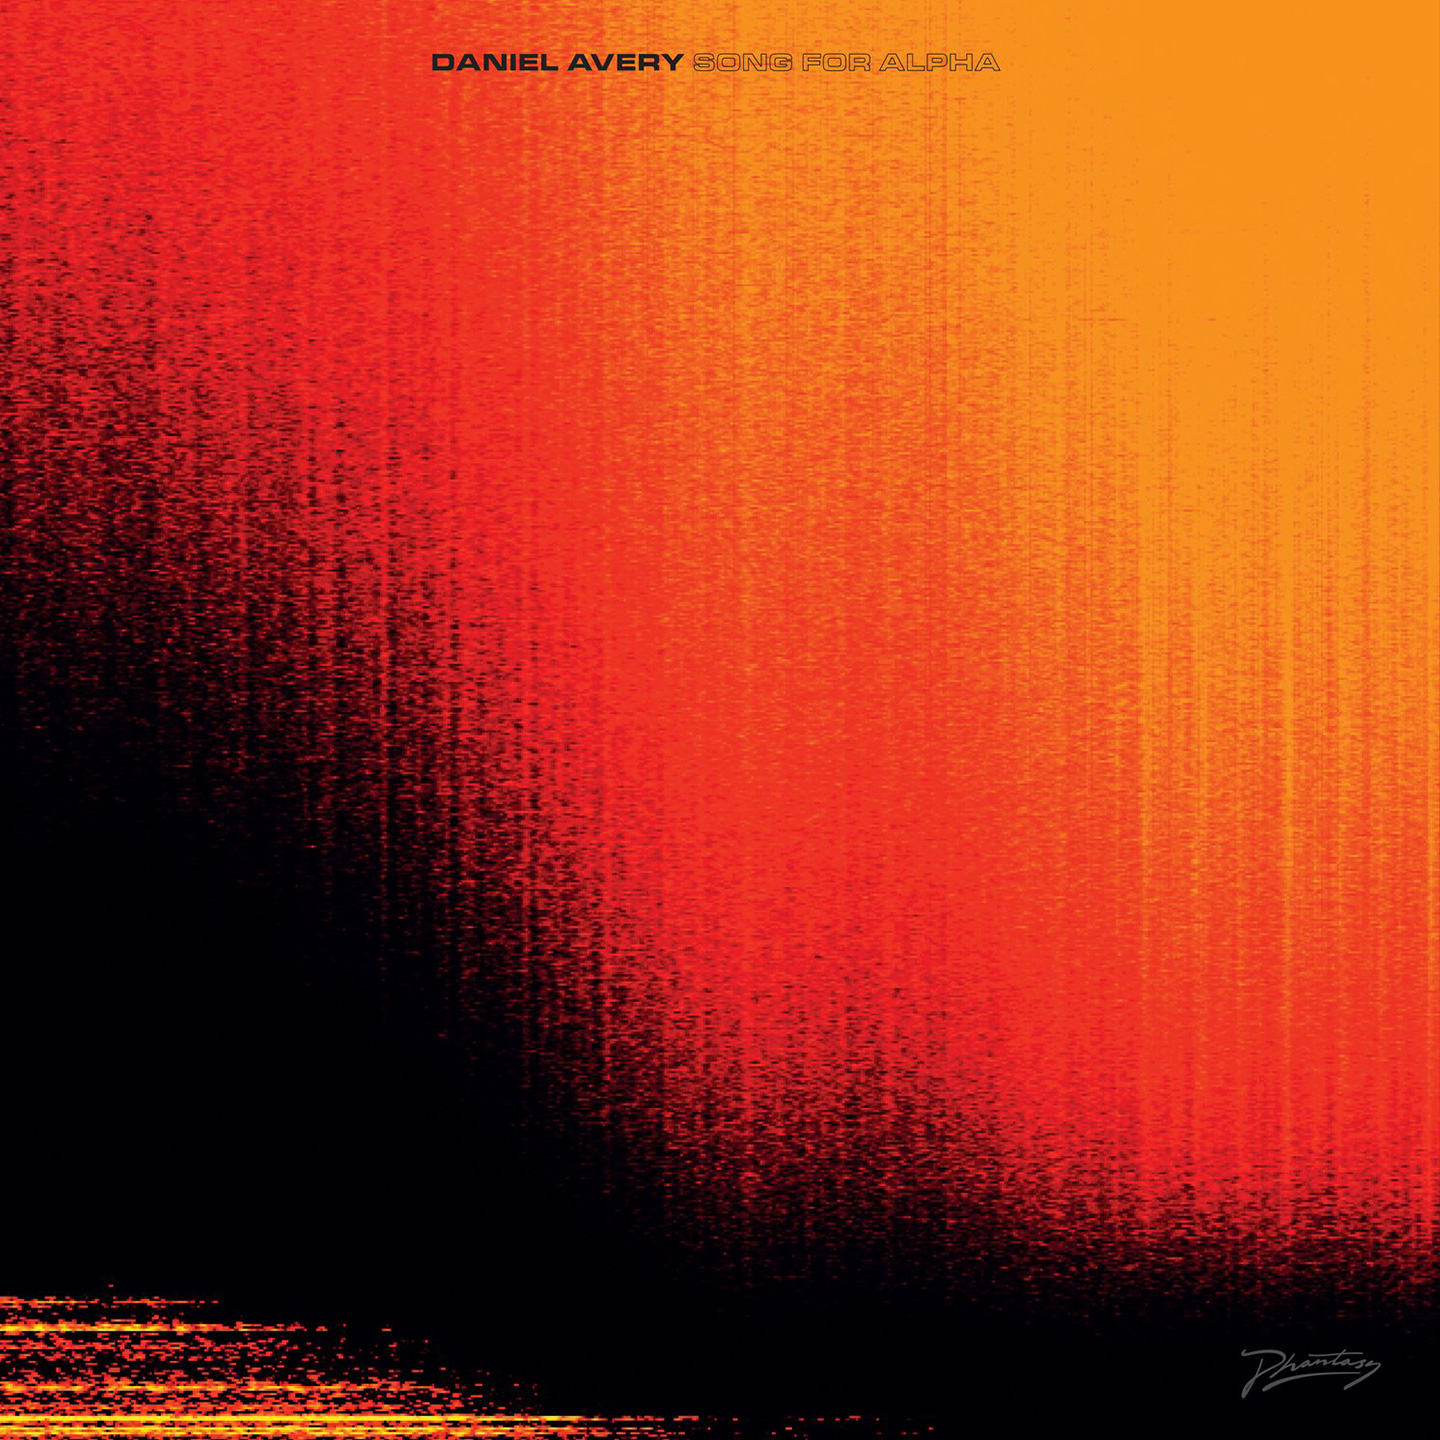 Song for Alpha by Daniel Avery